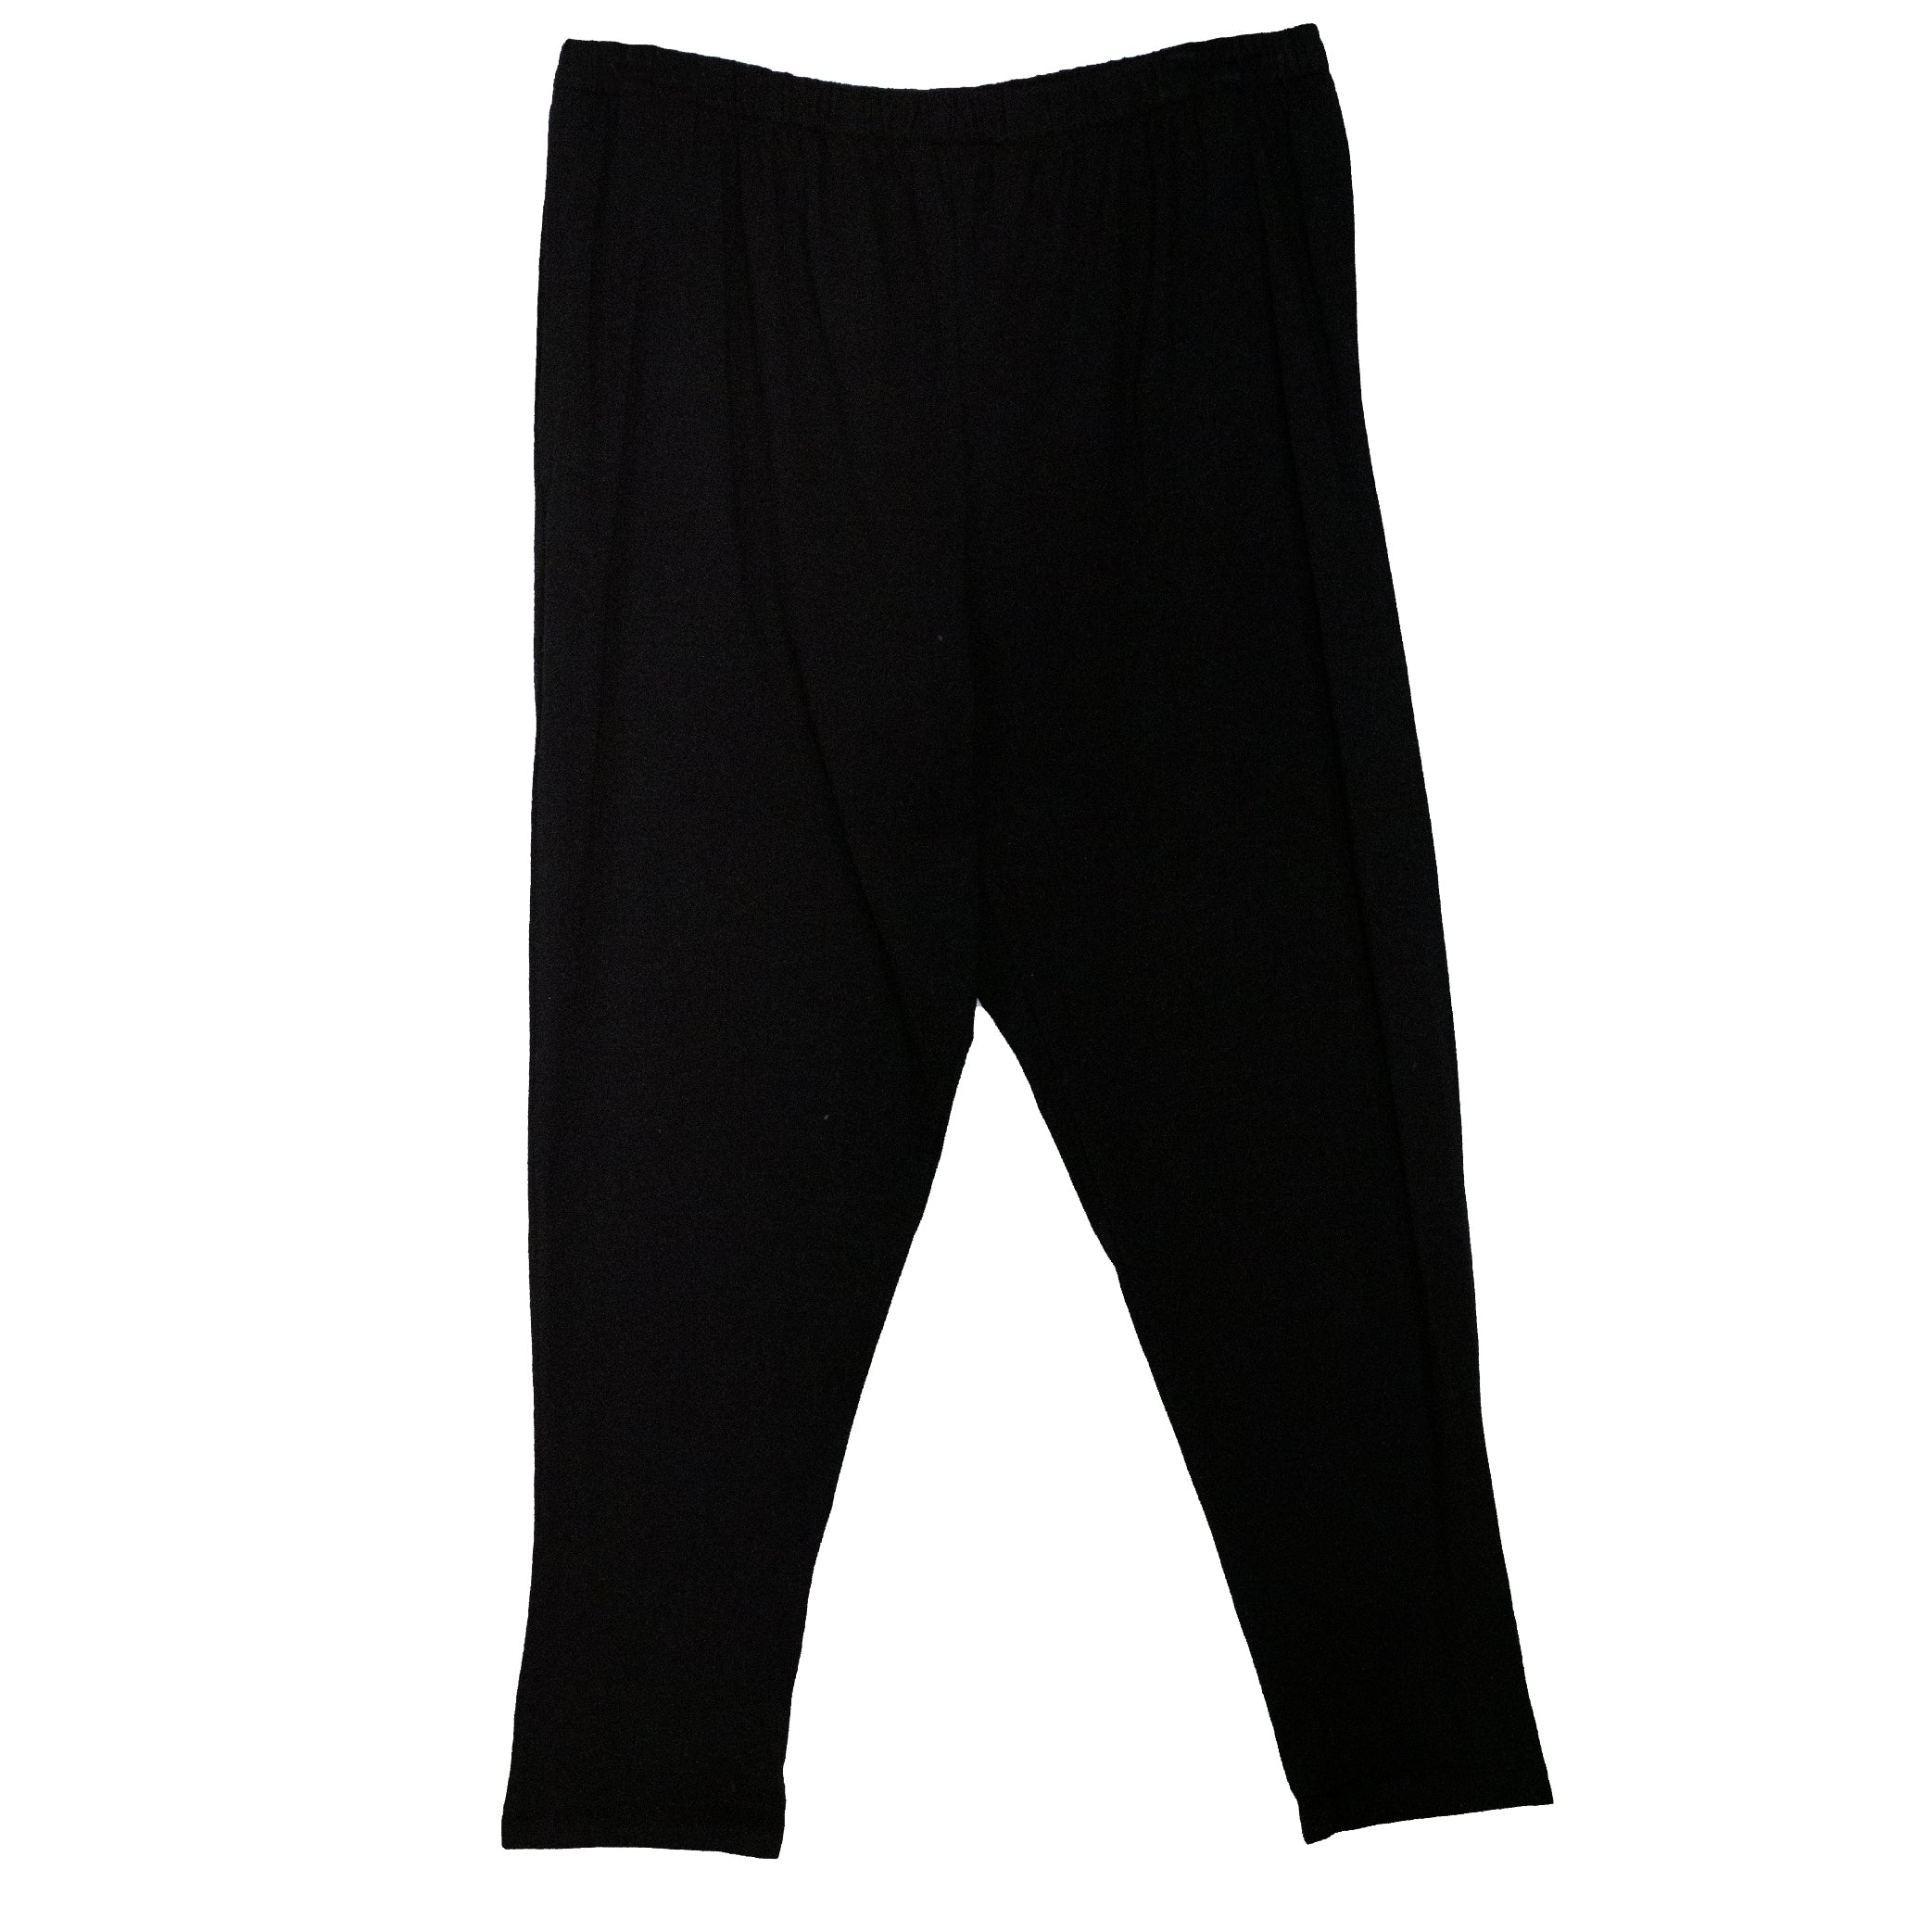 M Square, Pant, Legging, Black